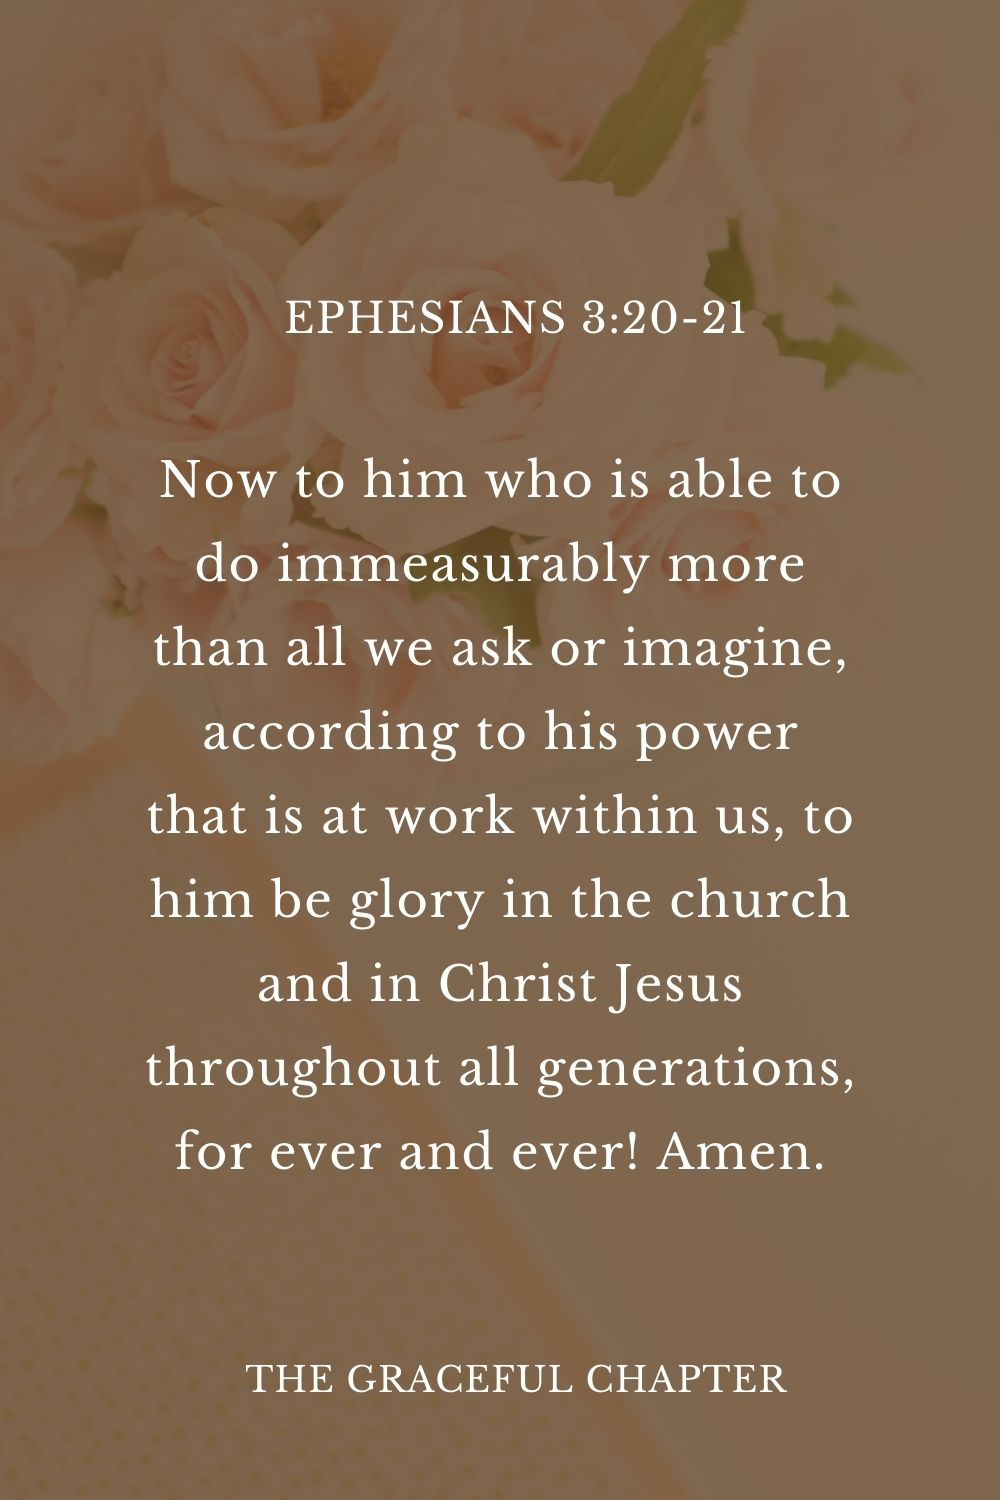 Now to him who is able to do immeasurably more than all we ask or imagine, according to his power that is at work within us, to him be glory in the church and in Christ Jesus throughout all generations, for ever and ever! Amen. Ephesians 3:20-21Now to him who is able to do immeasurably more than all we ask or imagine, according to his power that is at work within us, to him be glory in the church and in Christ Jesus throughout all generations, for ever and ever! Amen.